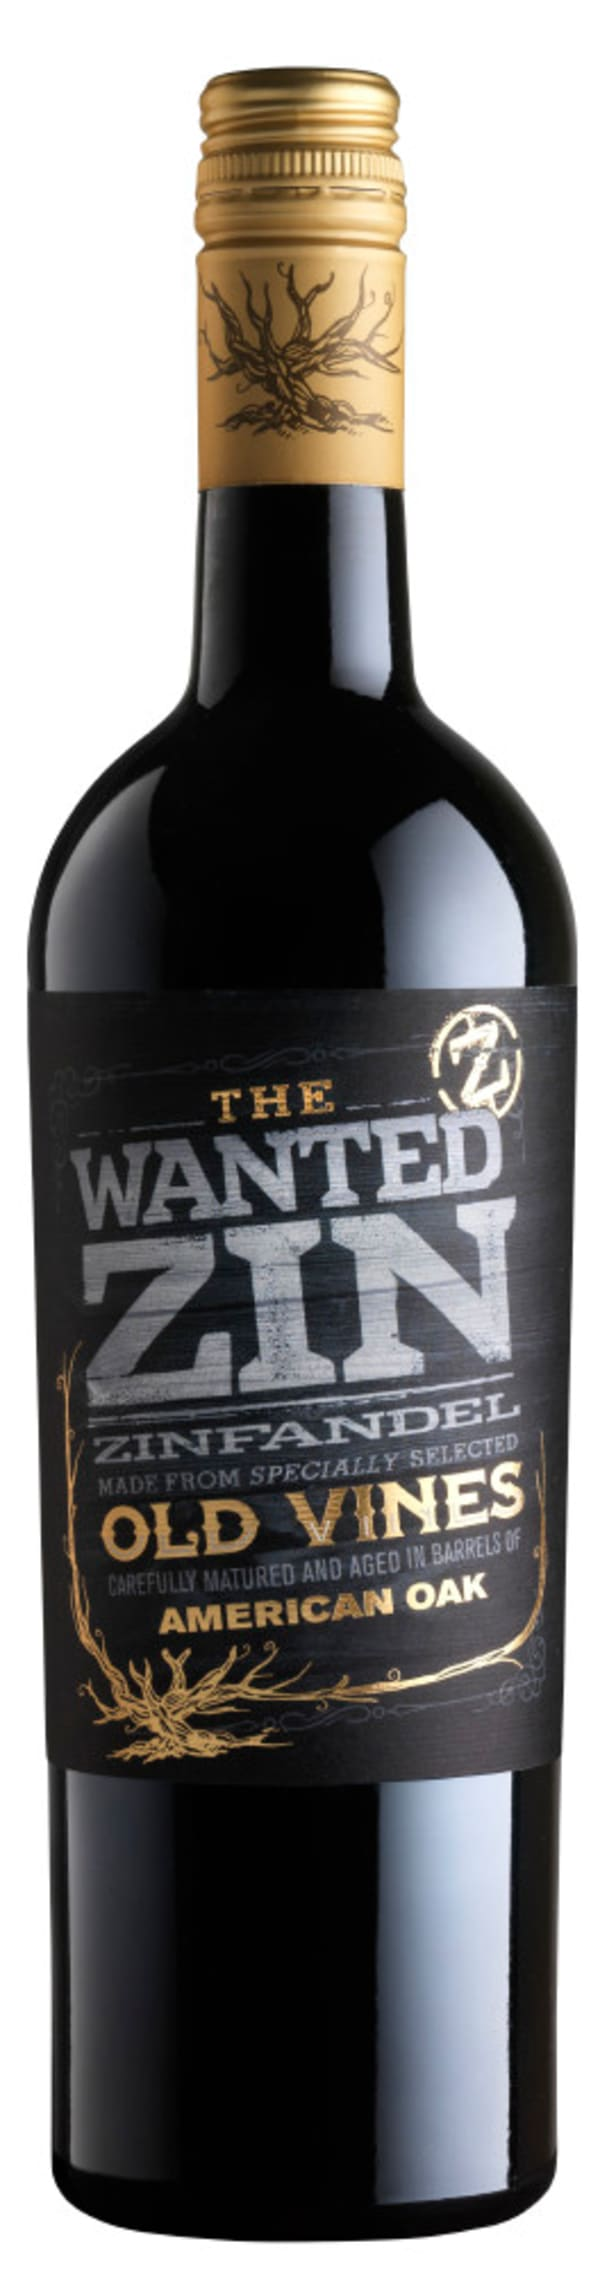 The Wanted Zin 2020